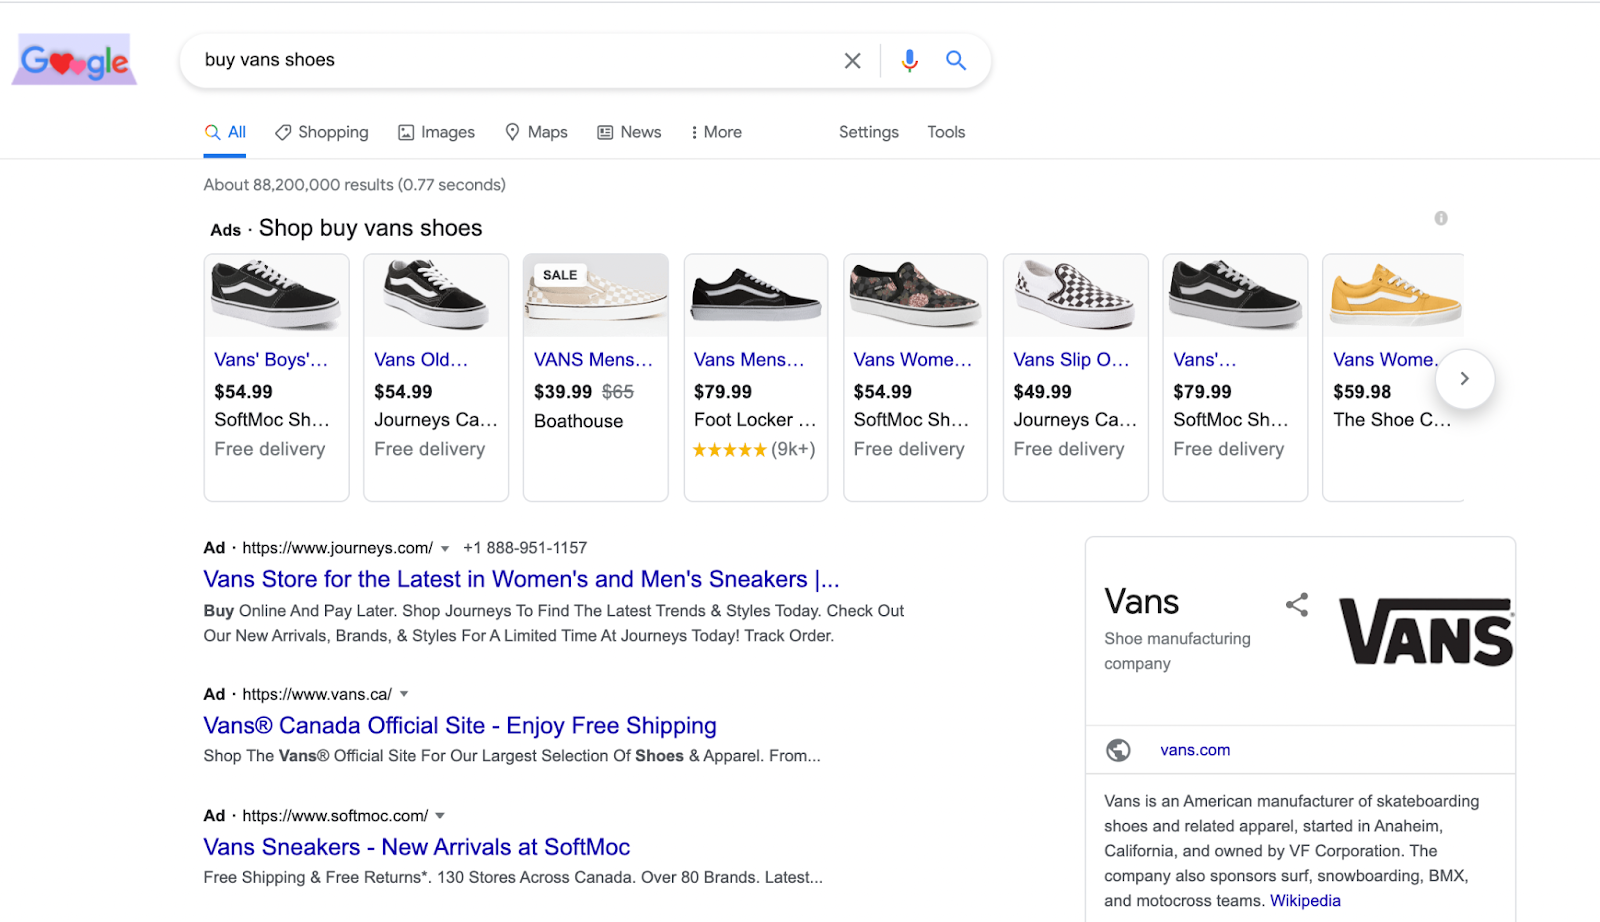 Google Shopping Ads at the top of Google Search Engine Results Page (SERP)